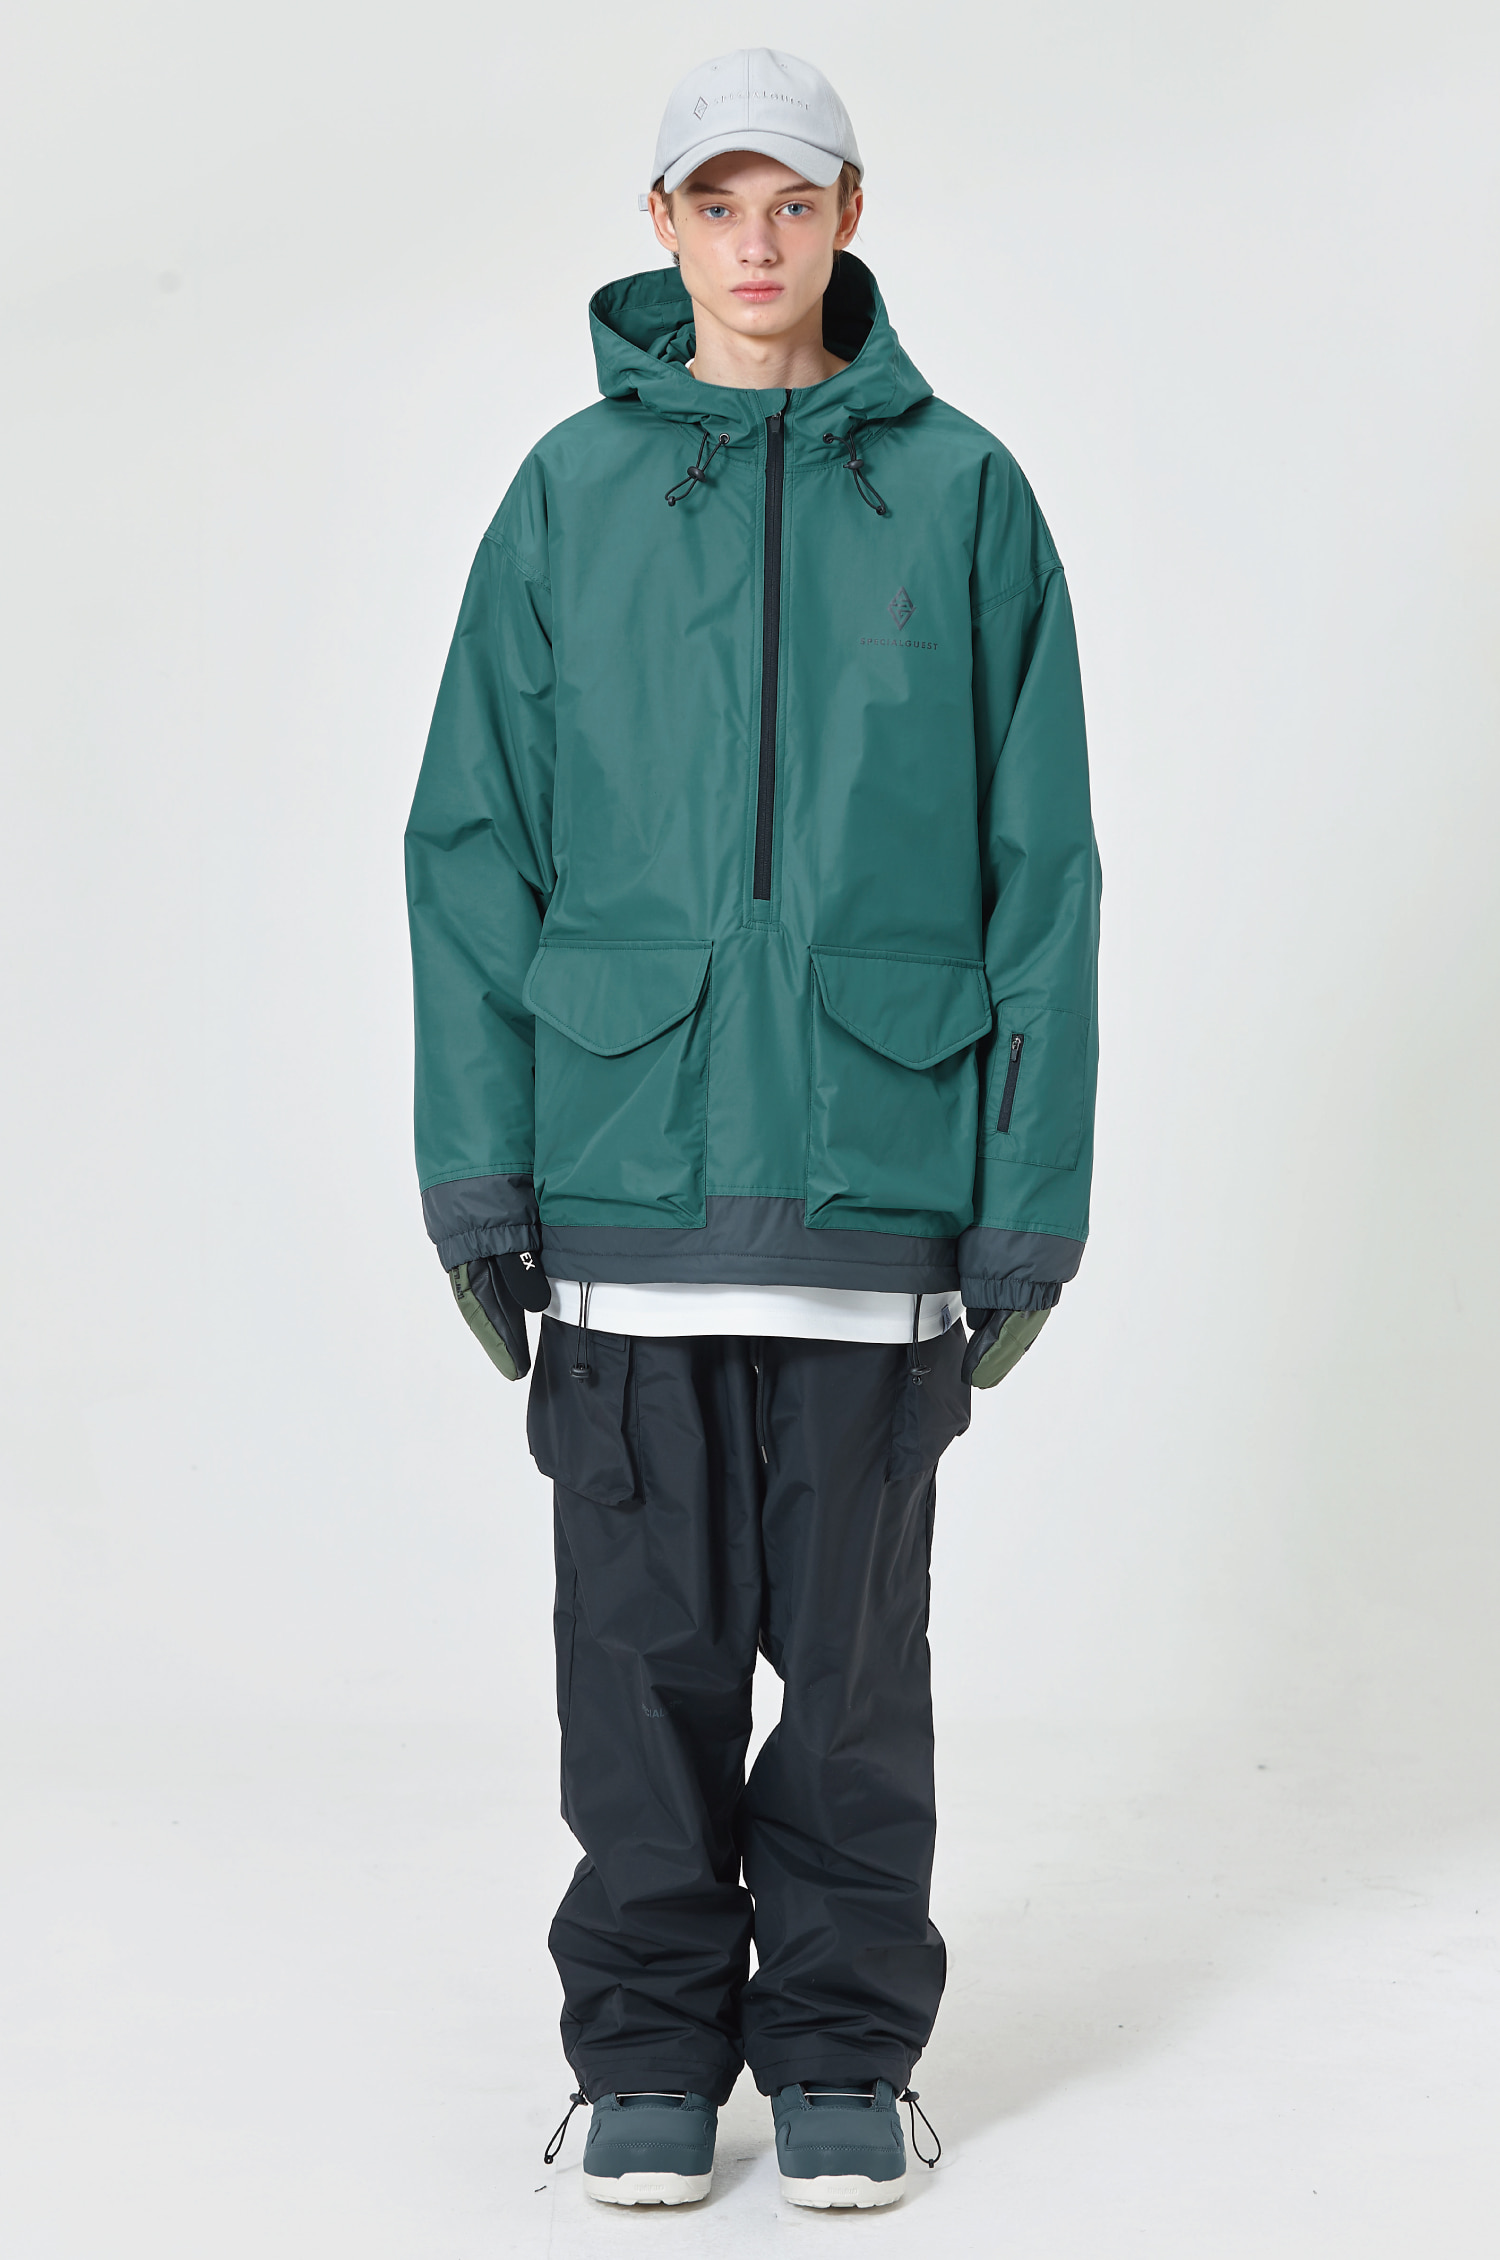 SET 29 - ANORAK / PANTS